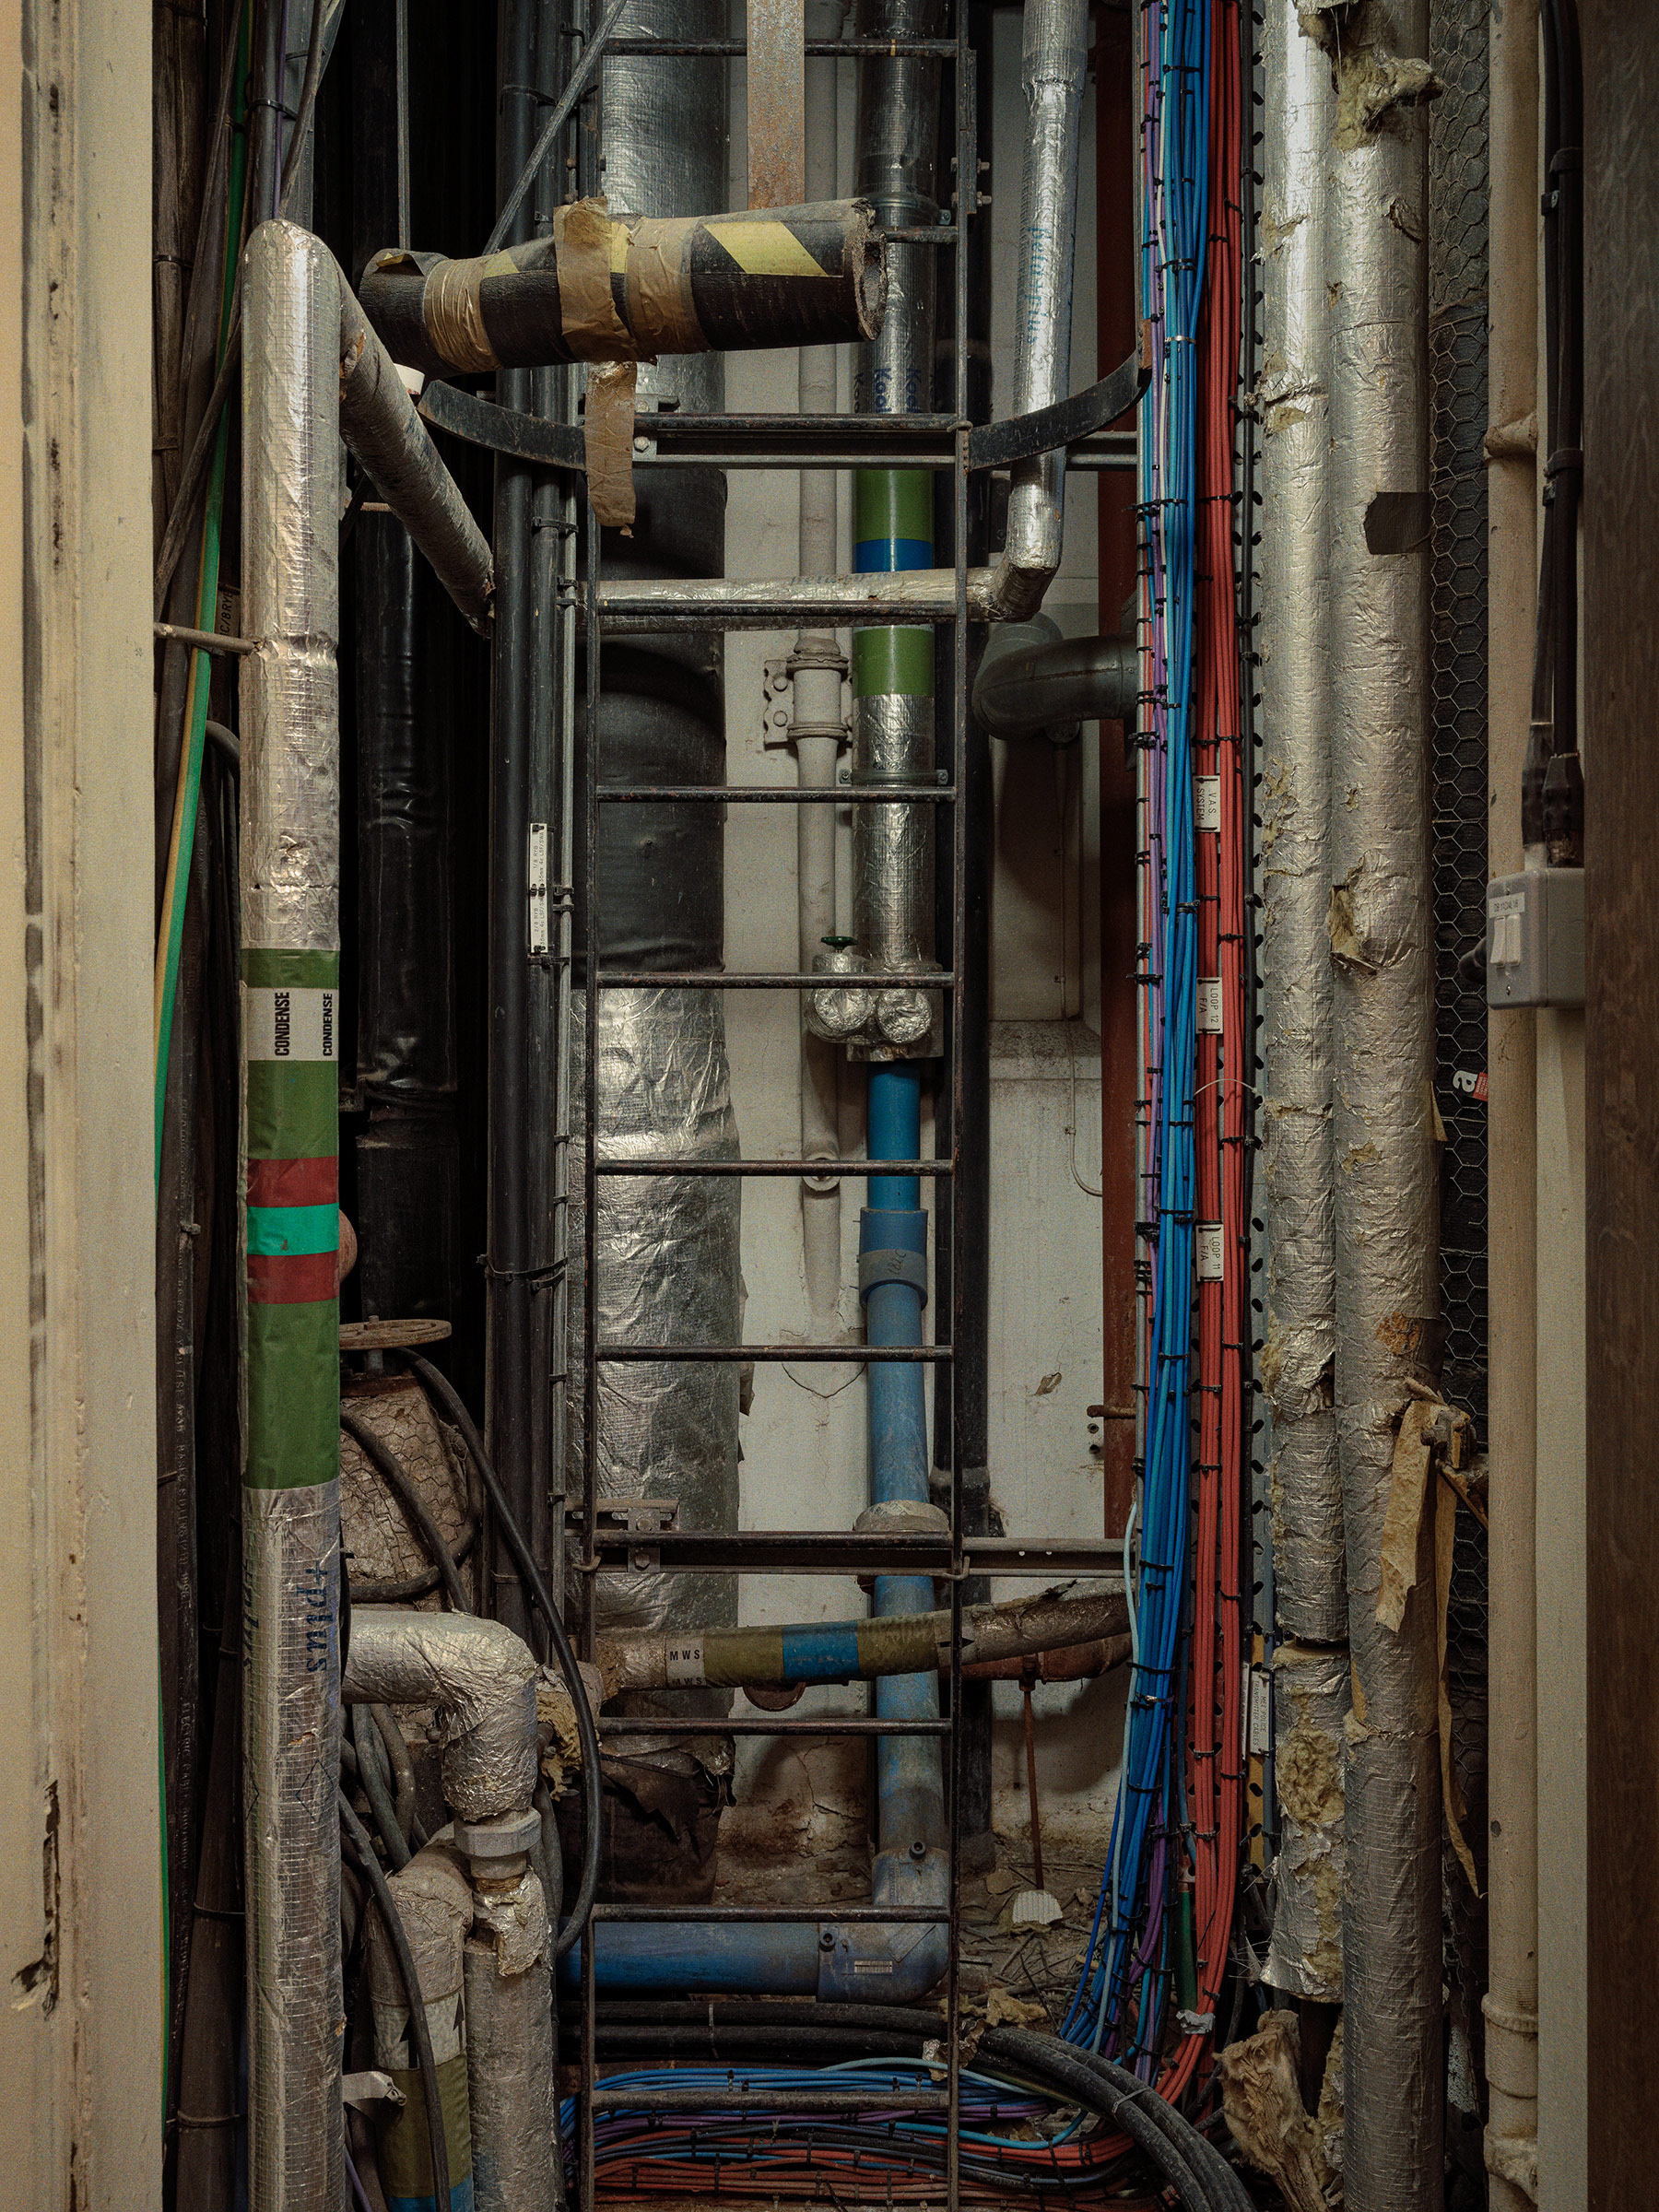 A view of one of the many ventilation shafts inside the Palace of Westminster in London, packed full of cabling.